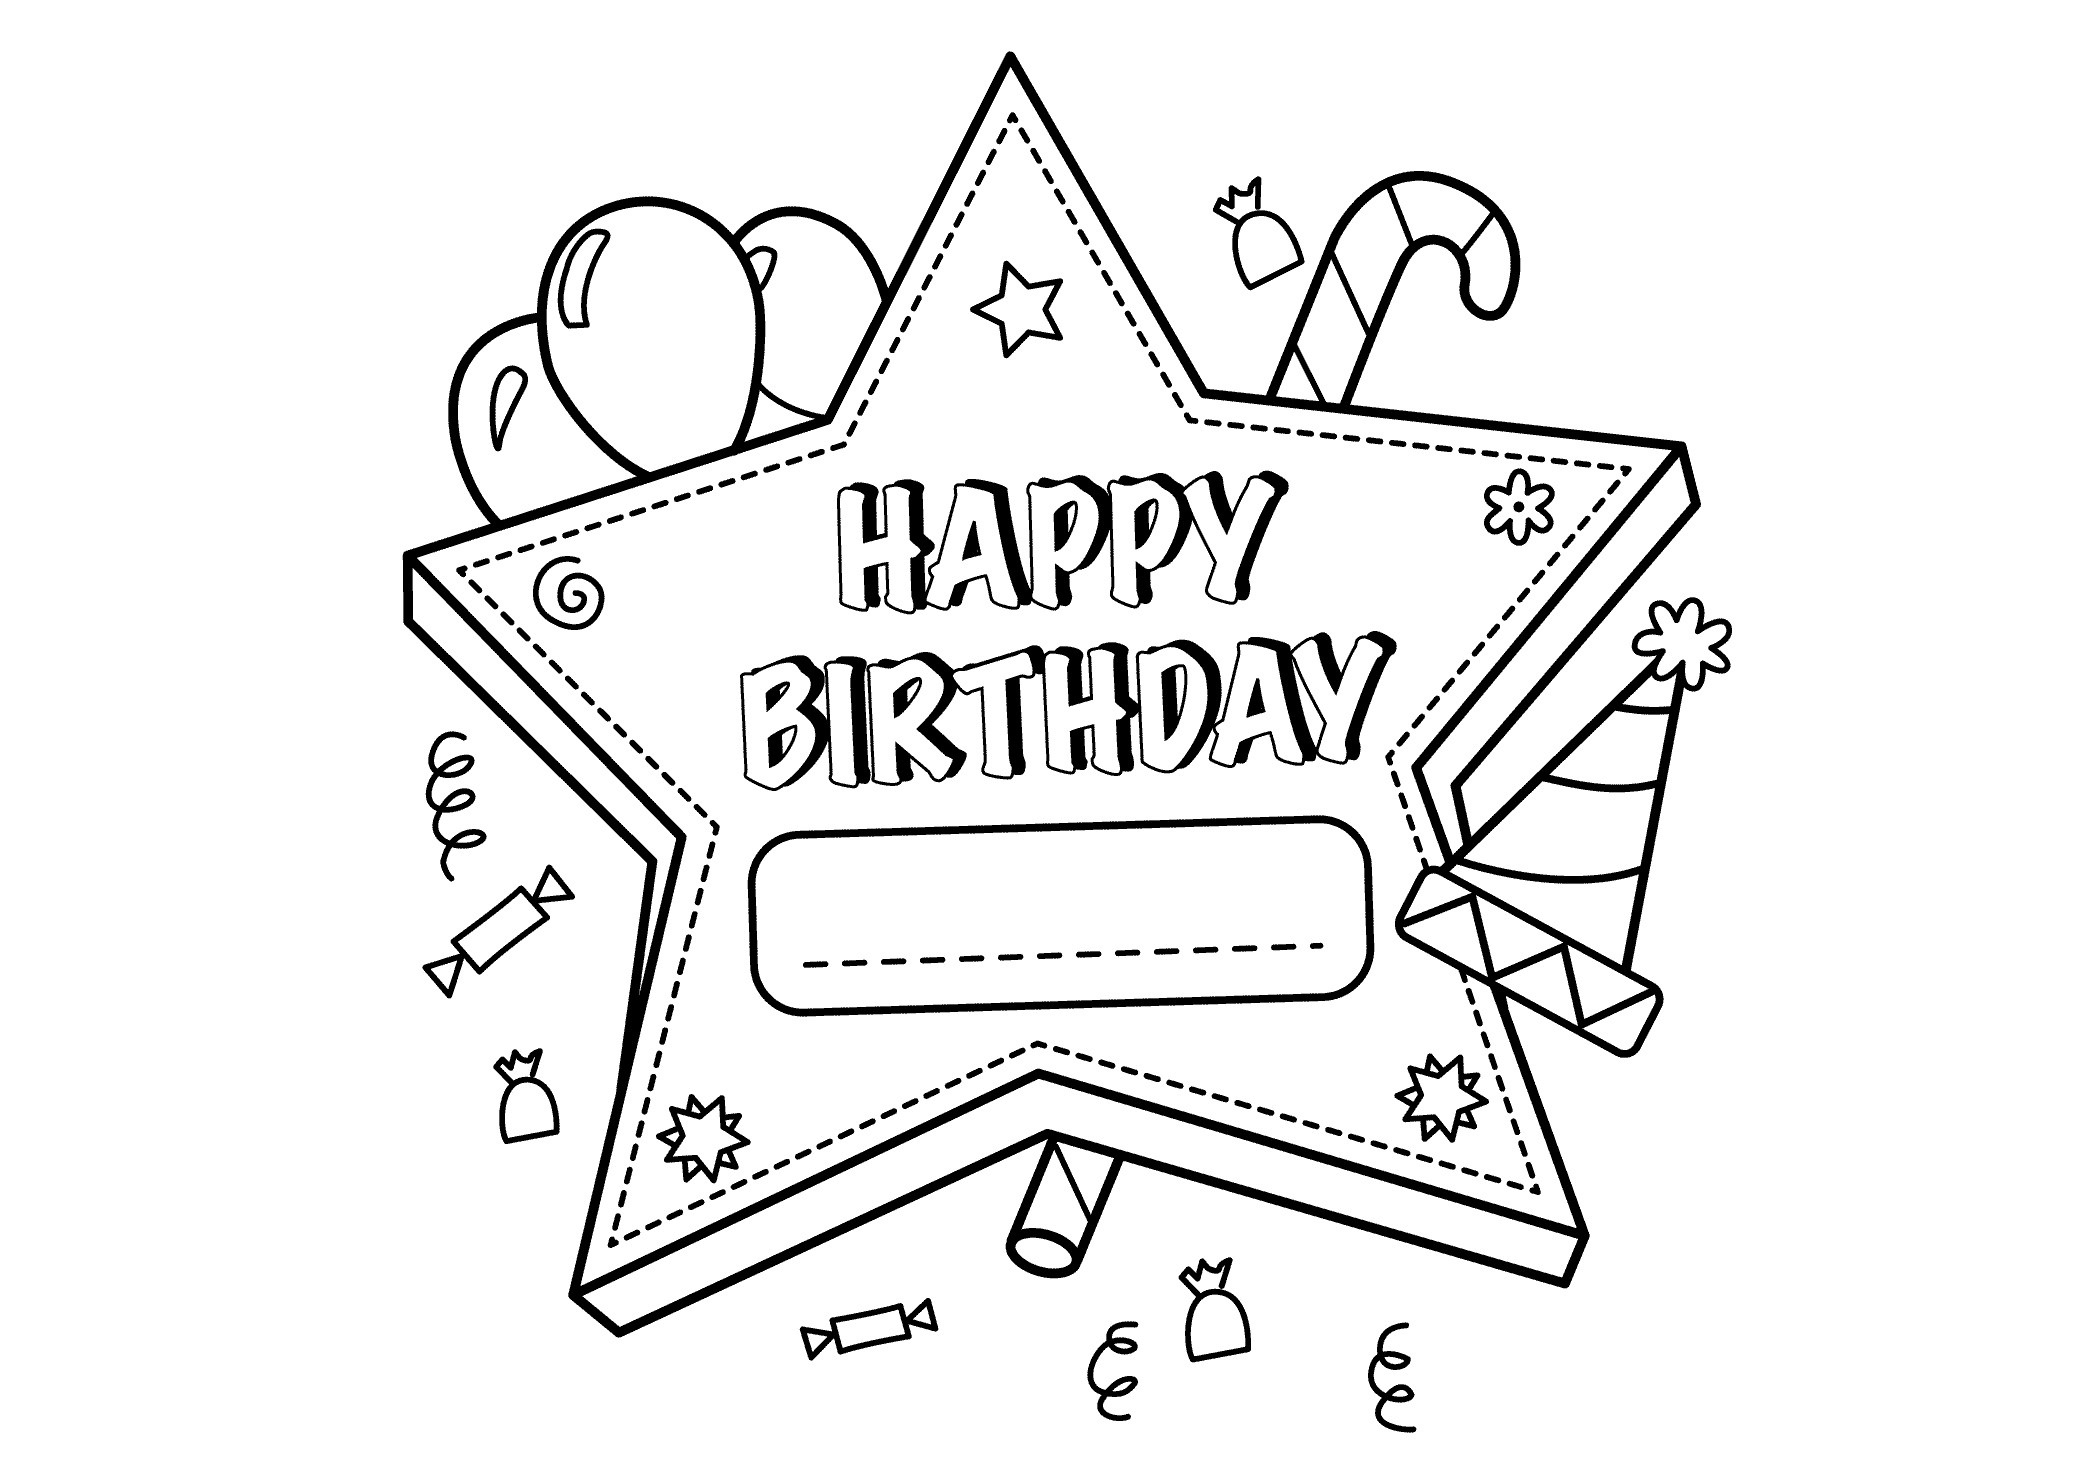 dinosaur happy birthday coloring pages dinosaur birthday coloring pages at getdrawings free pages coloring birthday dinosaur happy